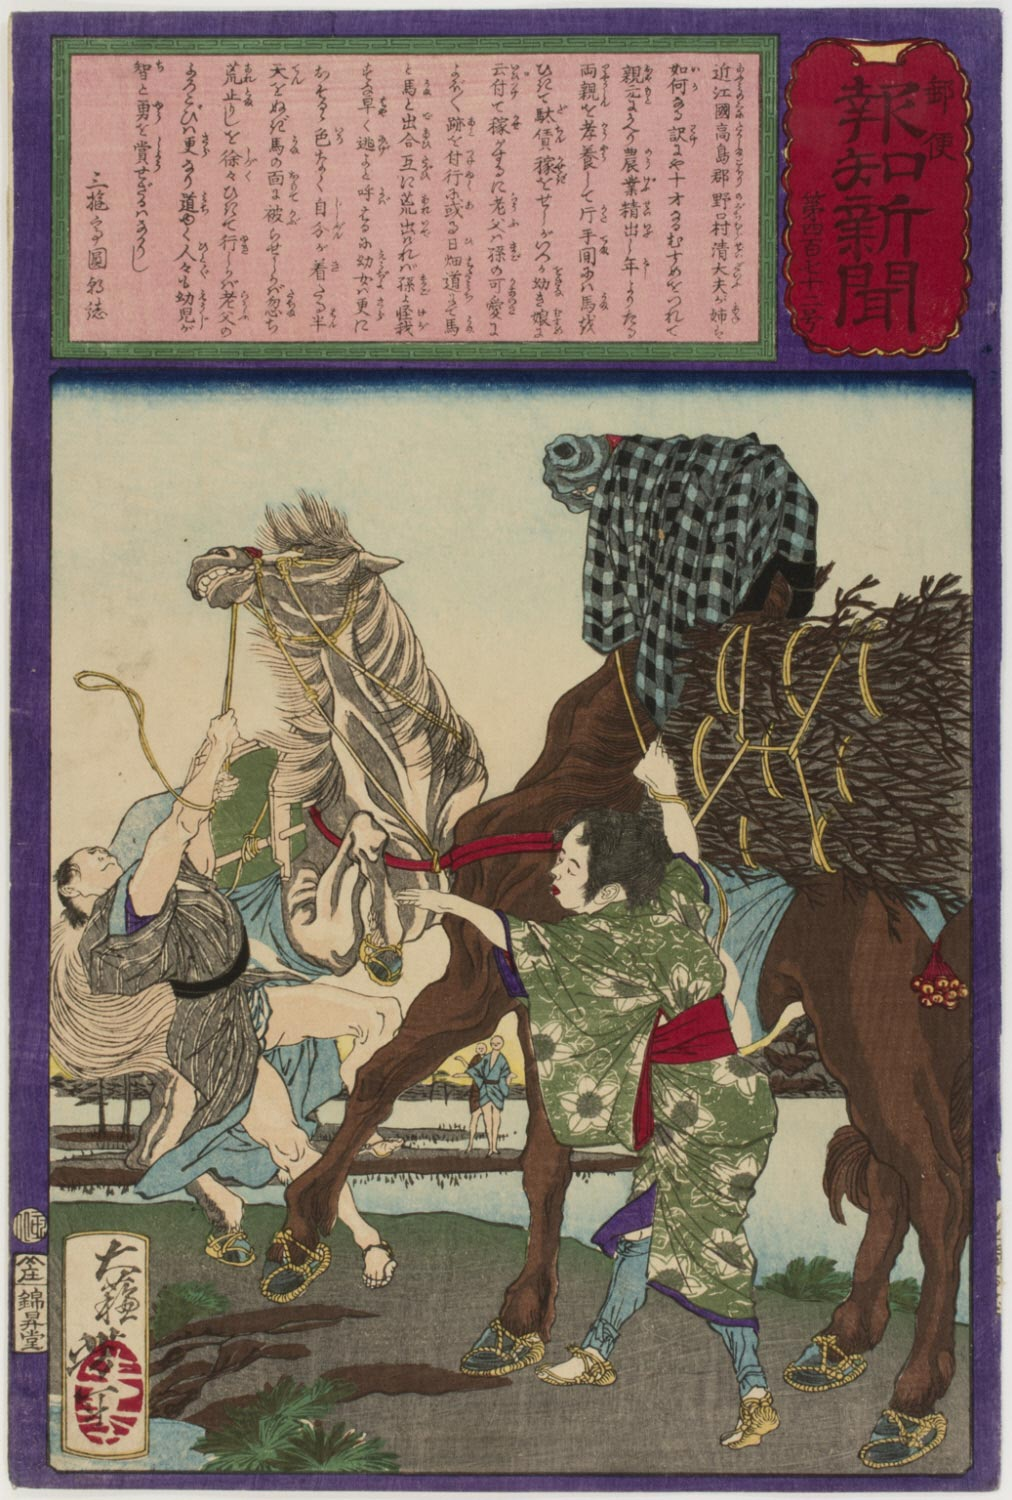 A Child of Ten Shows her Wisdom by Covering the Head of a Rearing Horse with her Jacket to Calm Him, No. 472 from the series The Postal Newspaper (Yūbin hōchi shimbun)